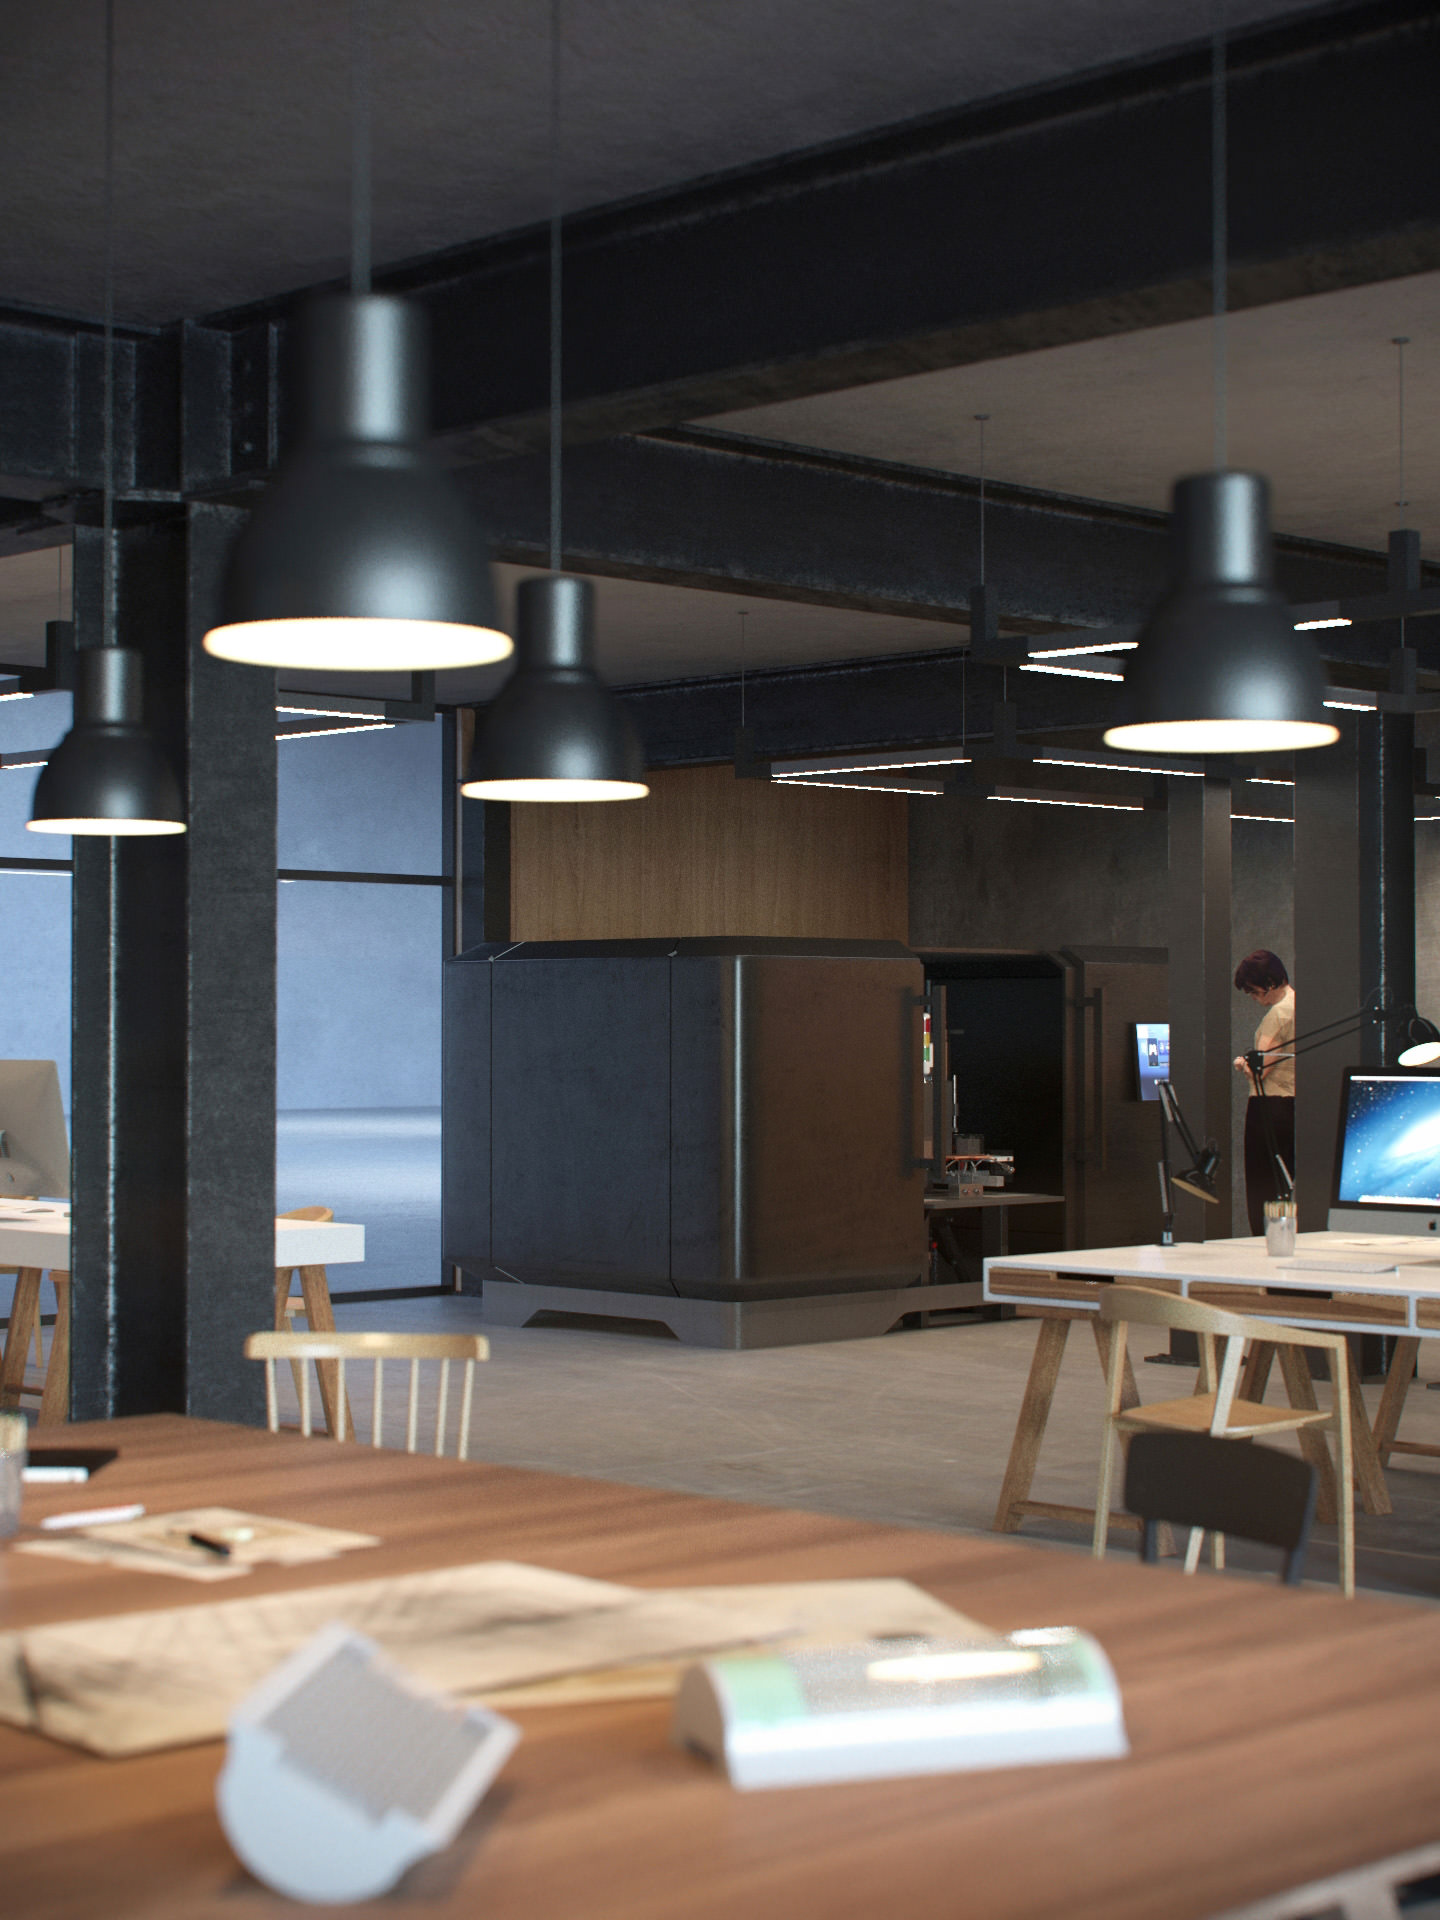 High end interior rendering of a lounge area in the factory workshop with wooden tables, bar stools and hanging lamps.